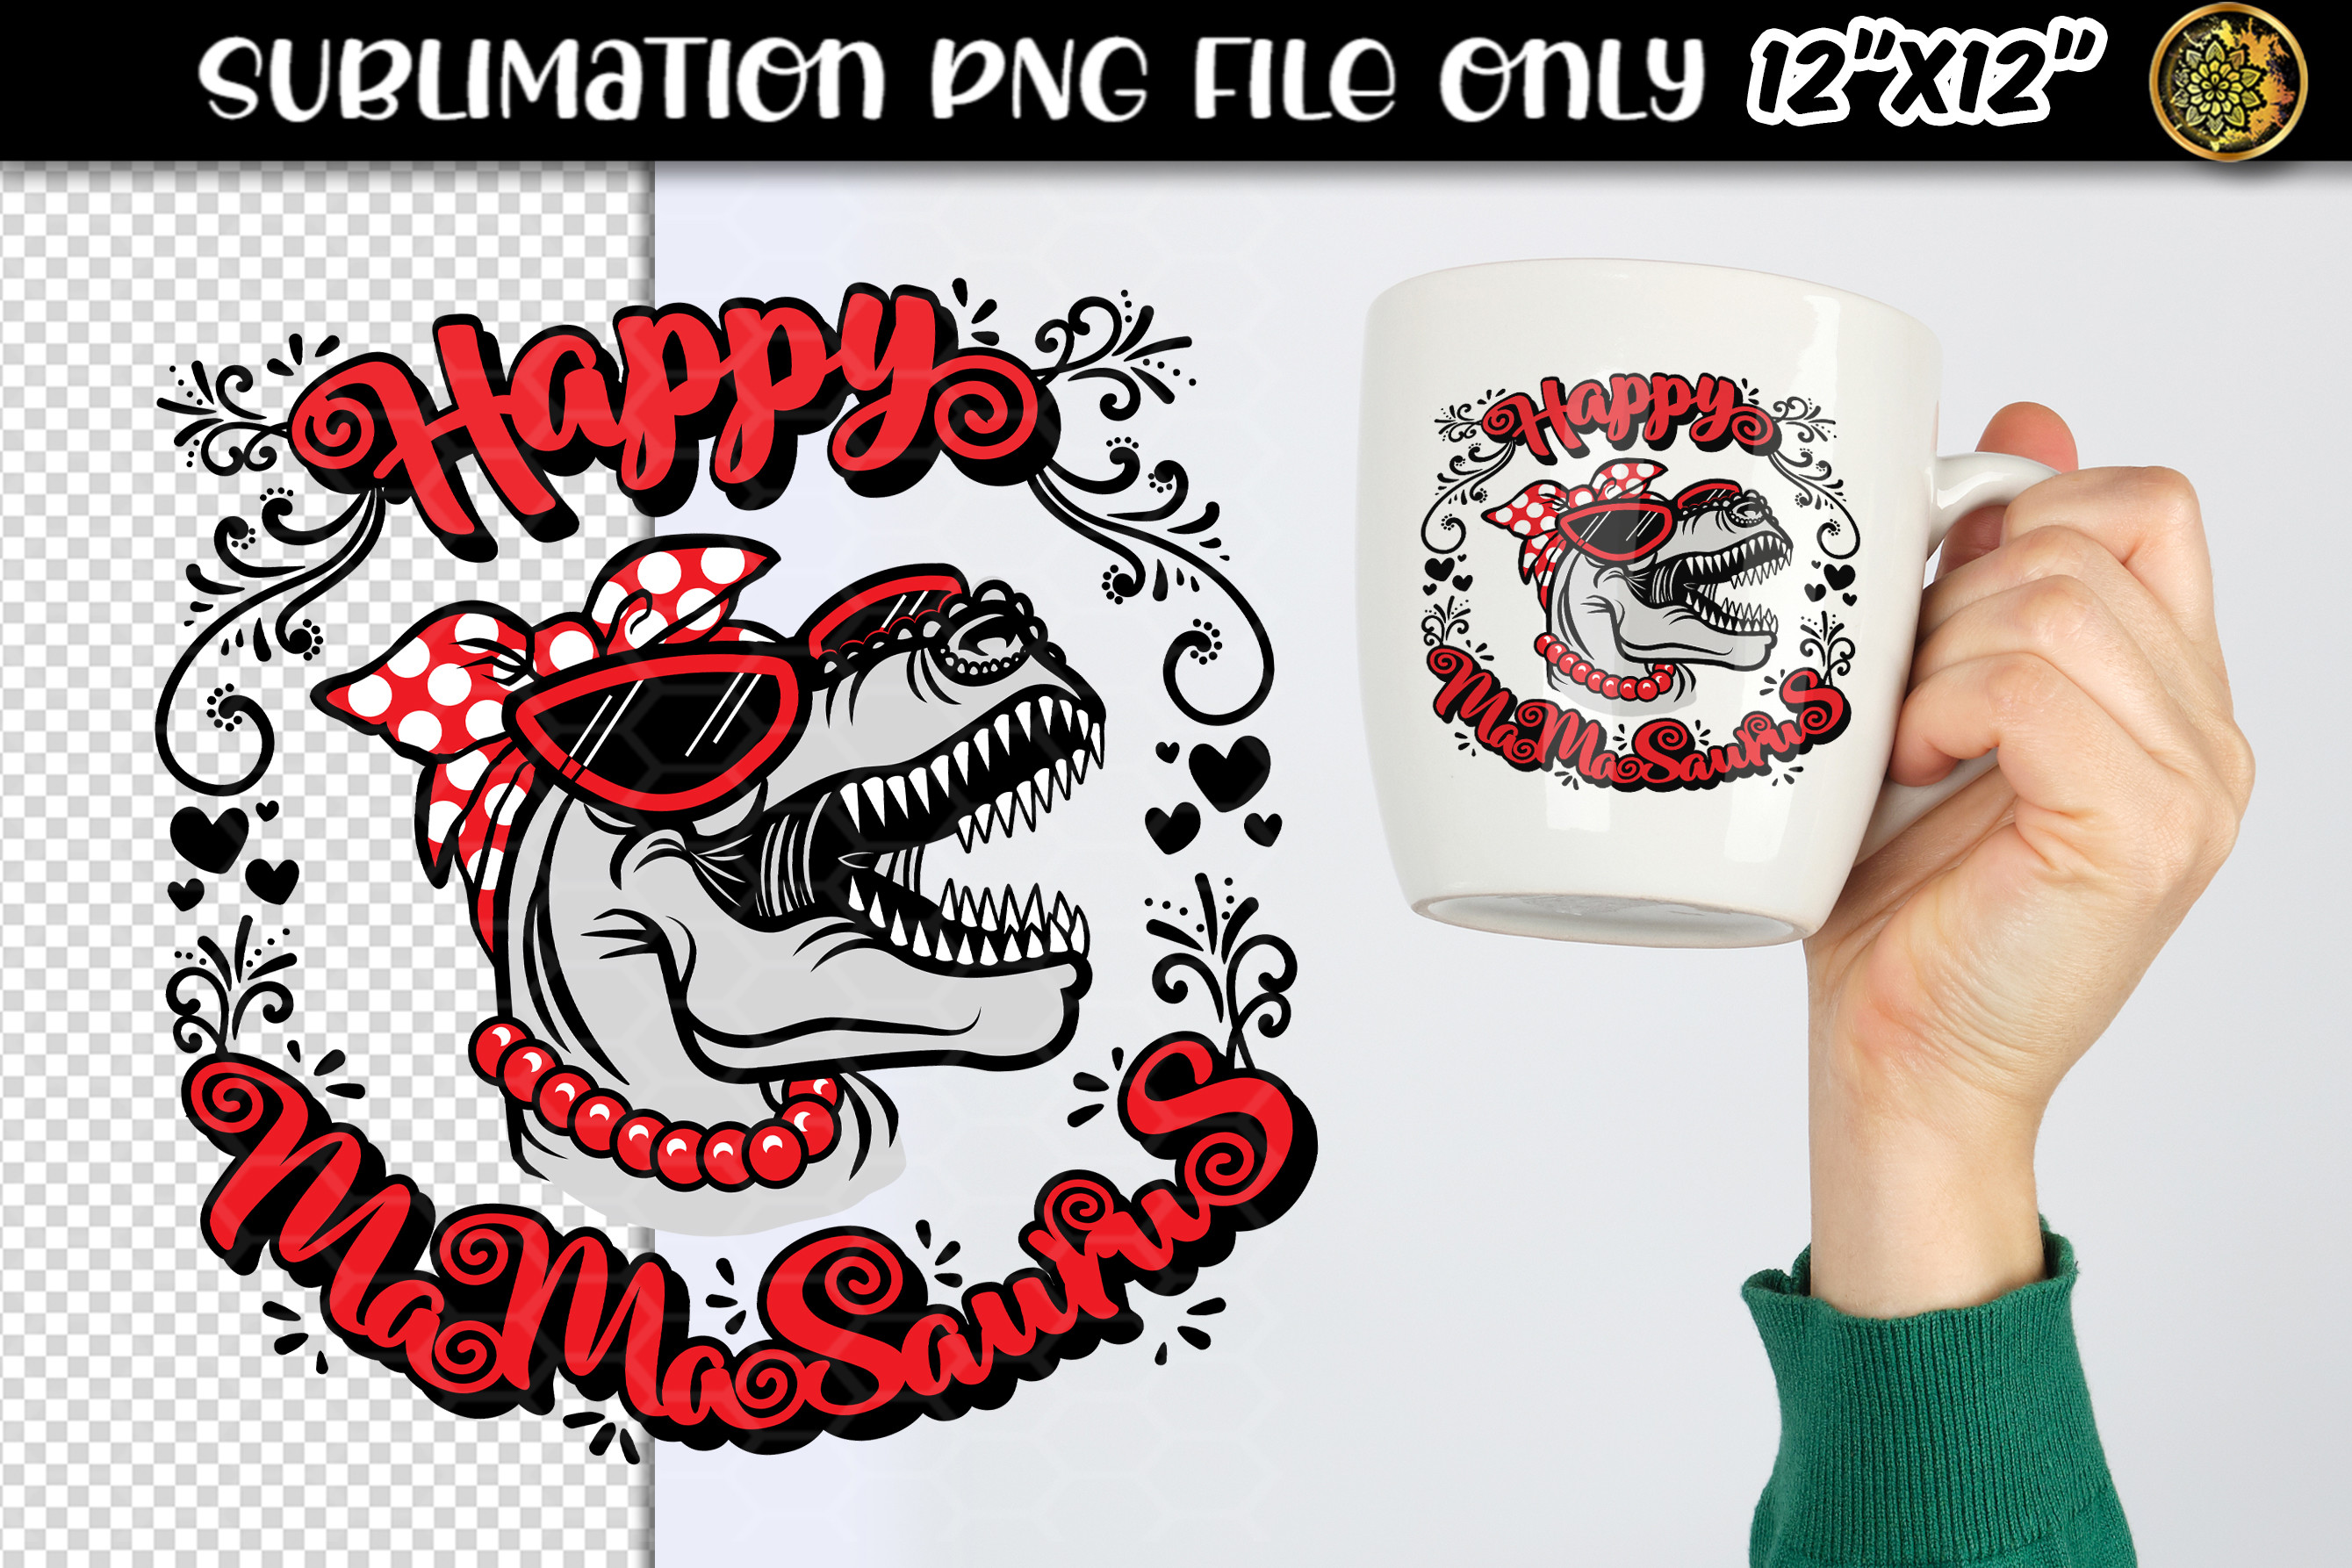 Happy Mamasaurus Sublimation Clipart SVG File